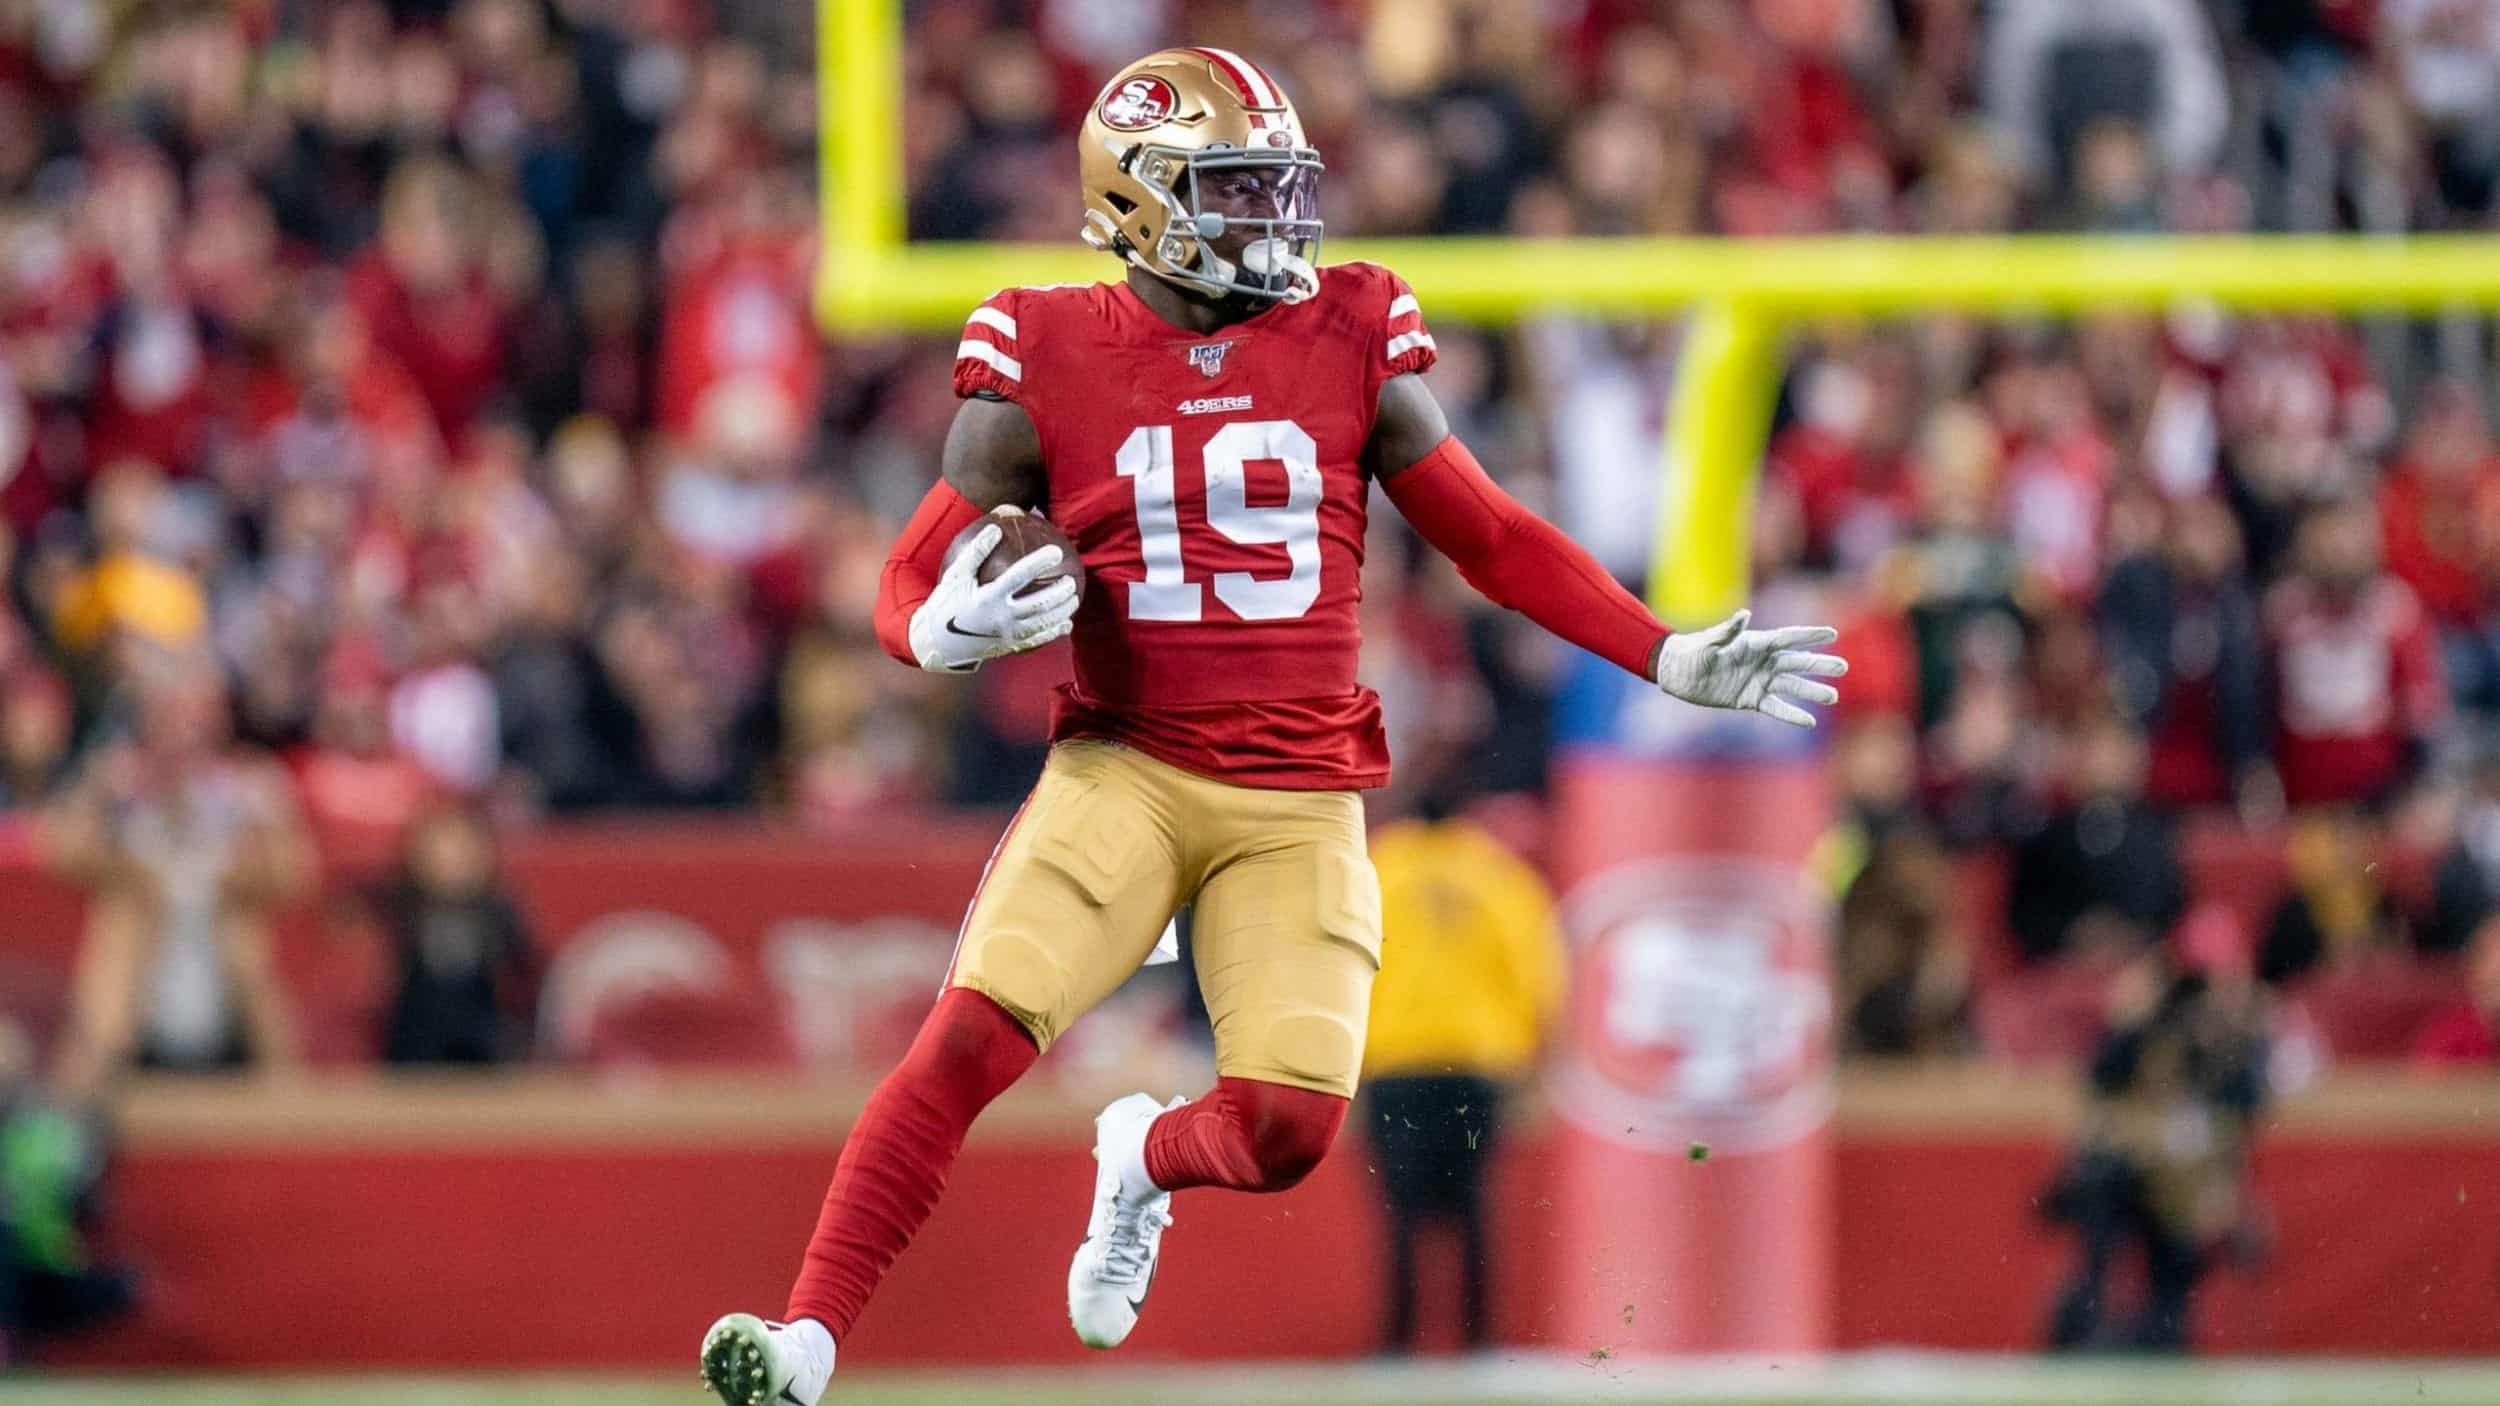 Losing Deebo Samuel in 2020 would be a devastating blow to the 49ers